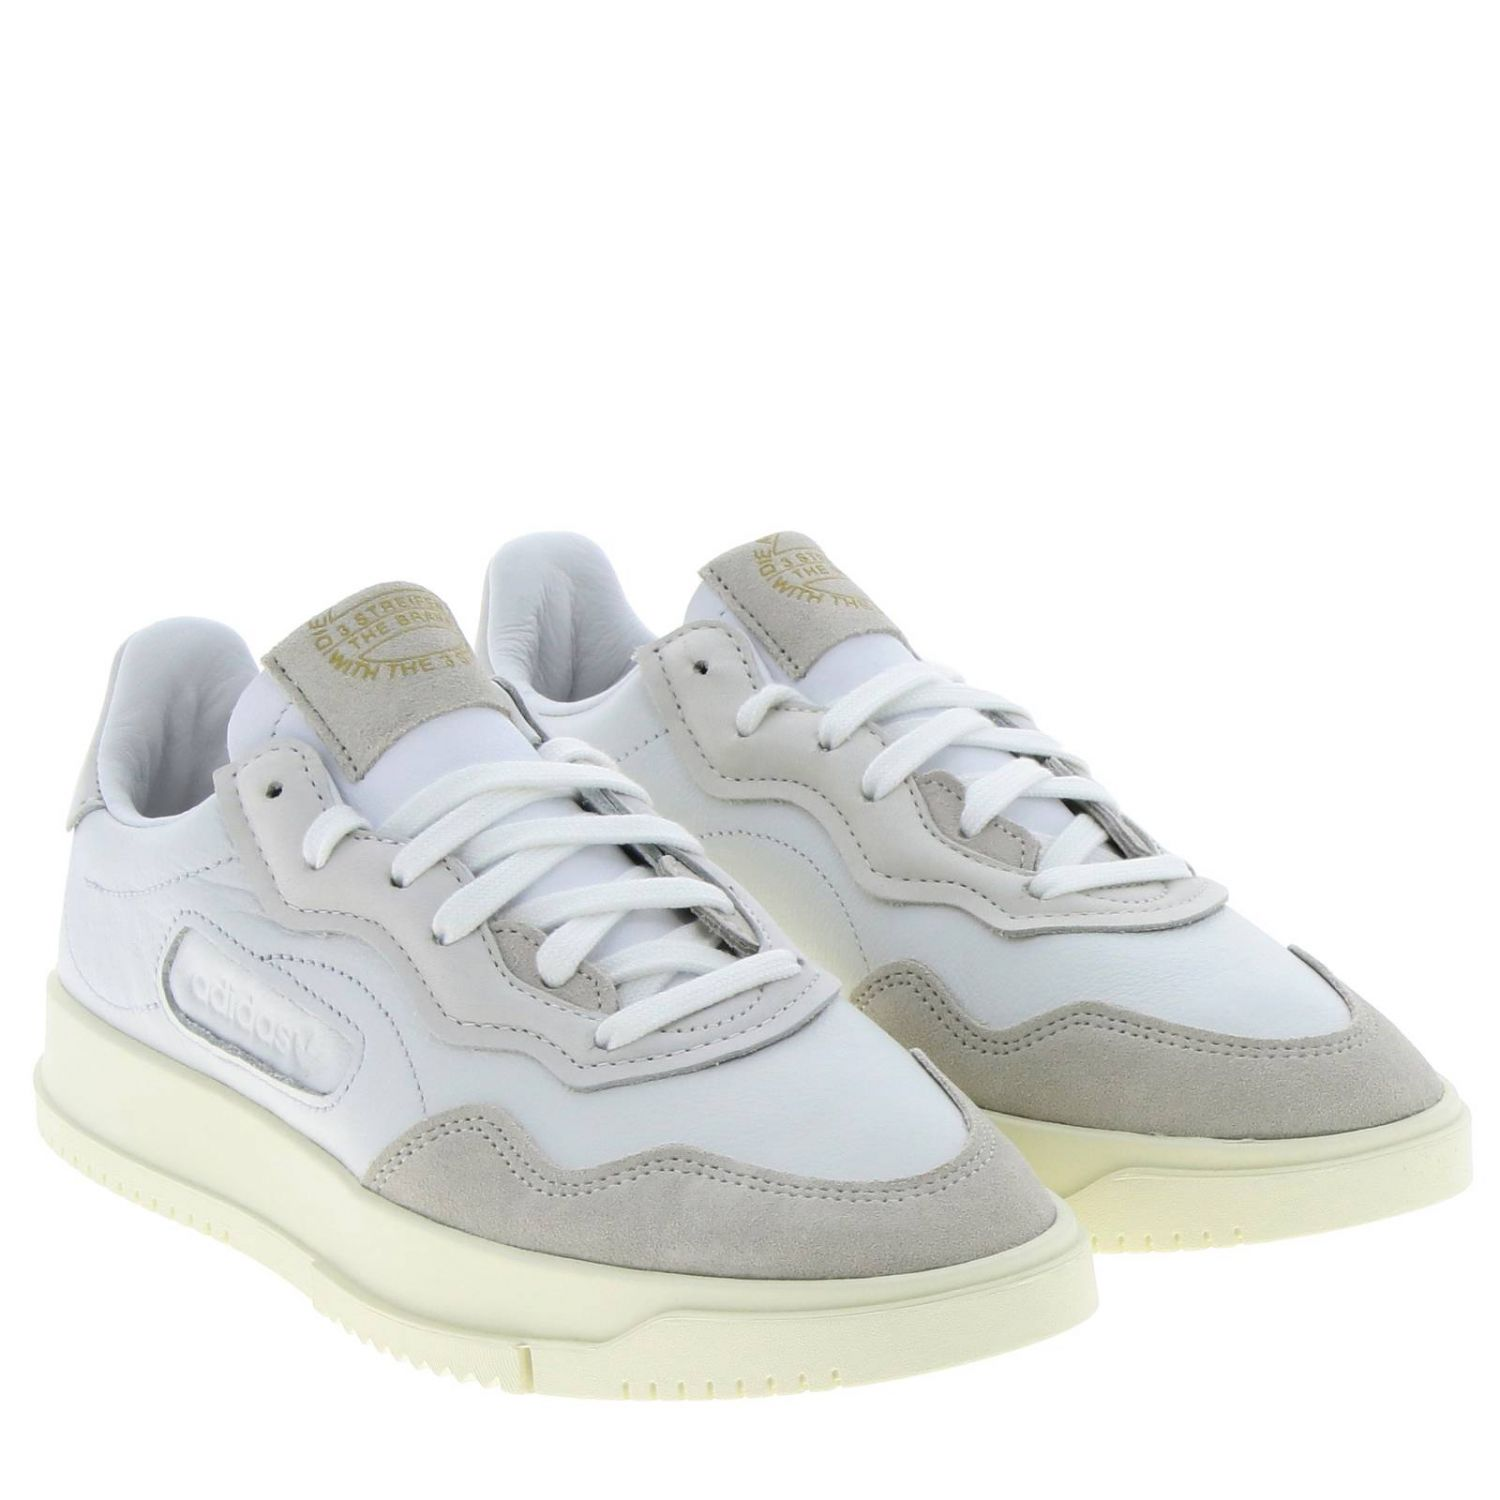 Sneakers Adidas Originals: Originals Originals Sc premiere sneakers in leather and suede white 2